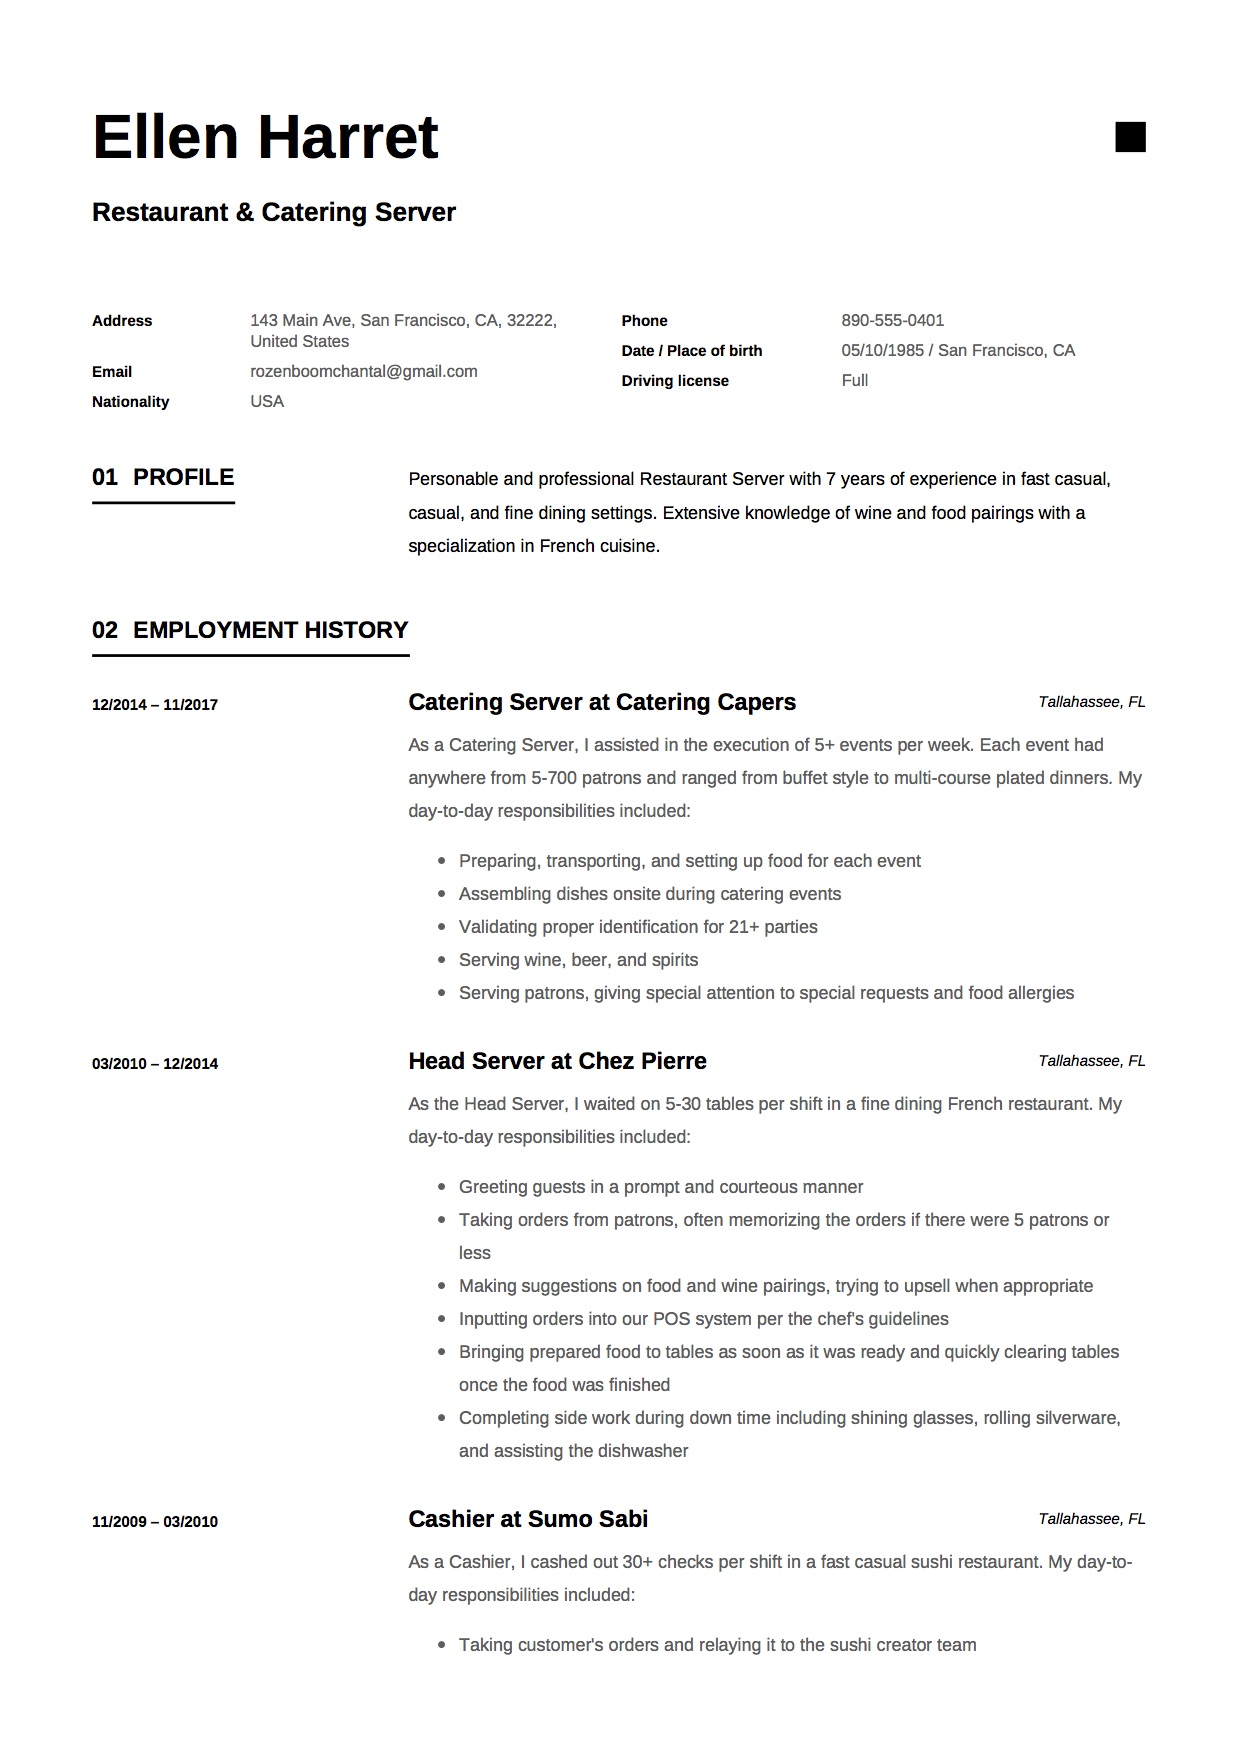 Resume   Restaurant U0026 Catering Server  Catering Server Resume